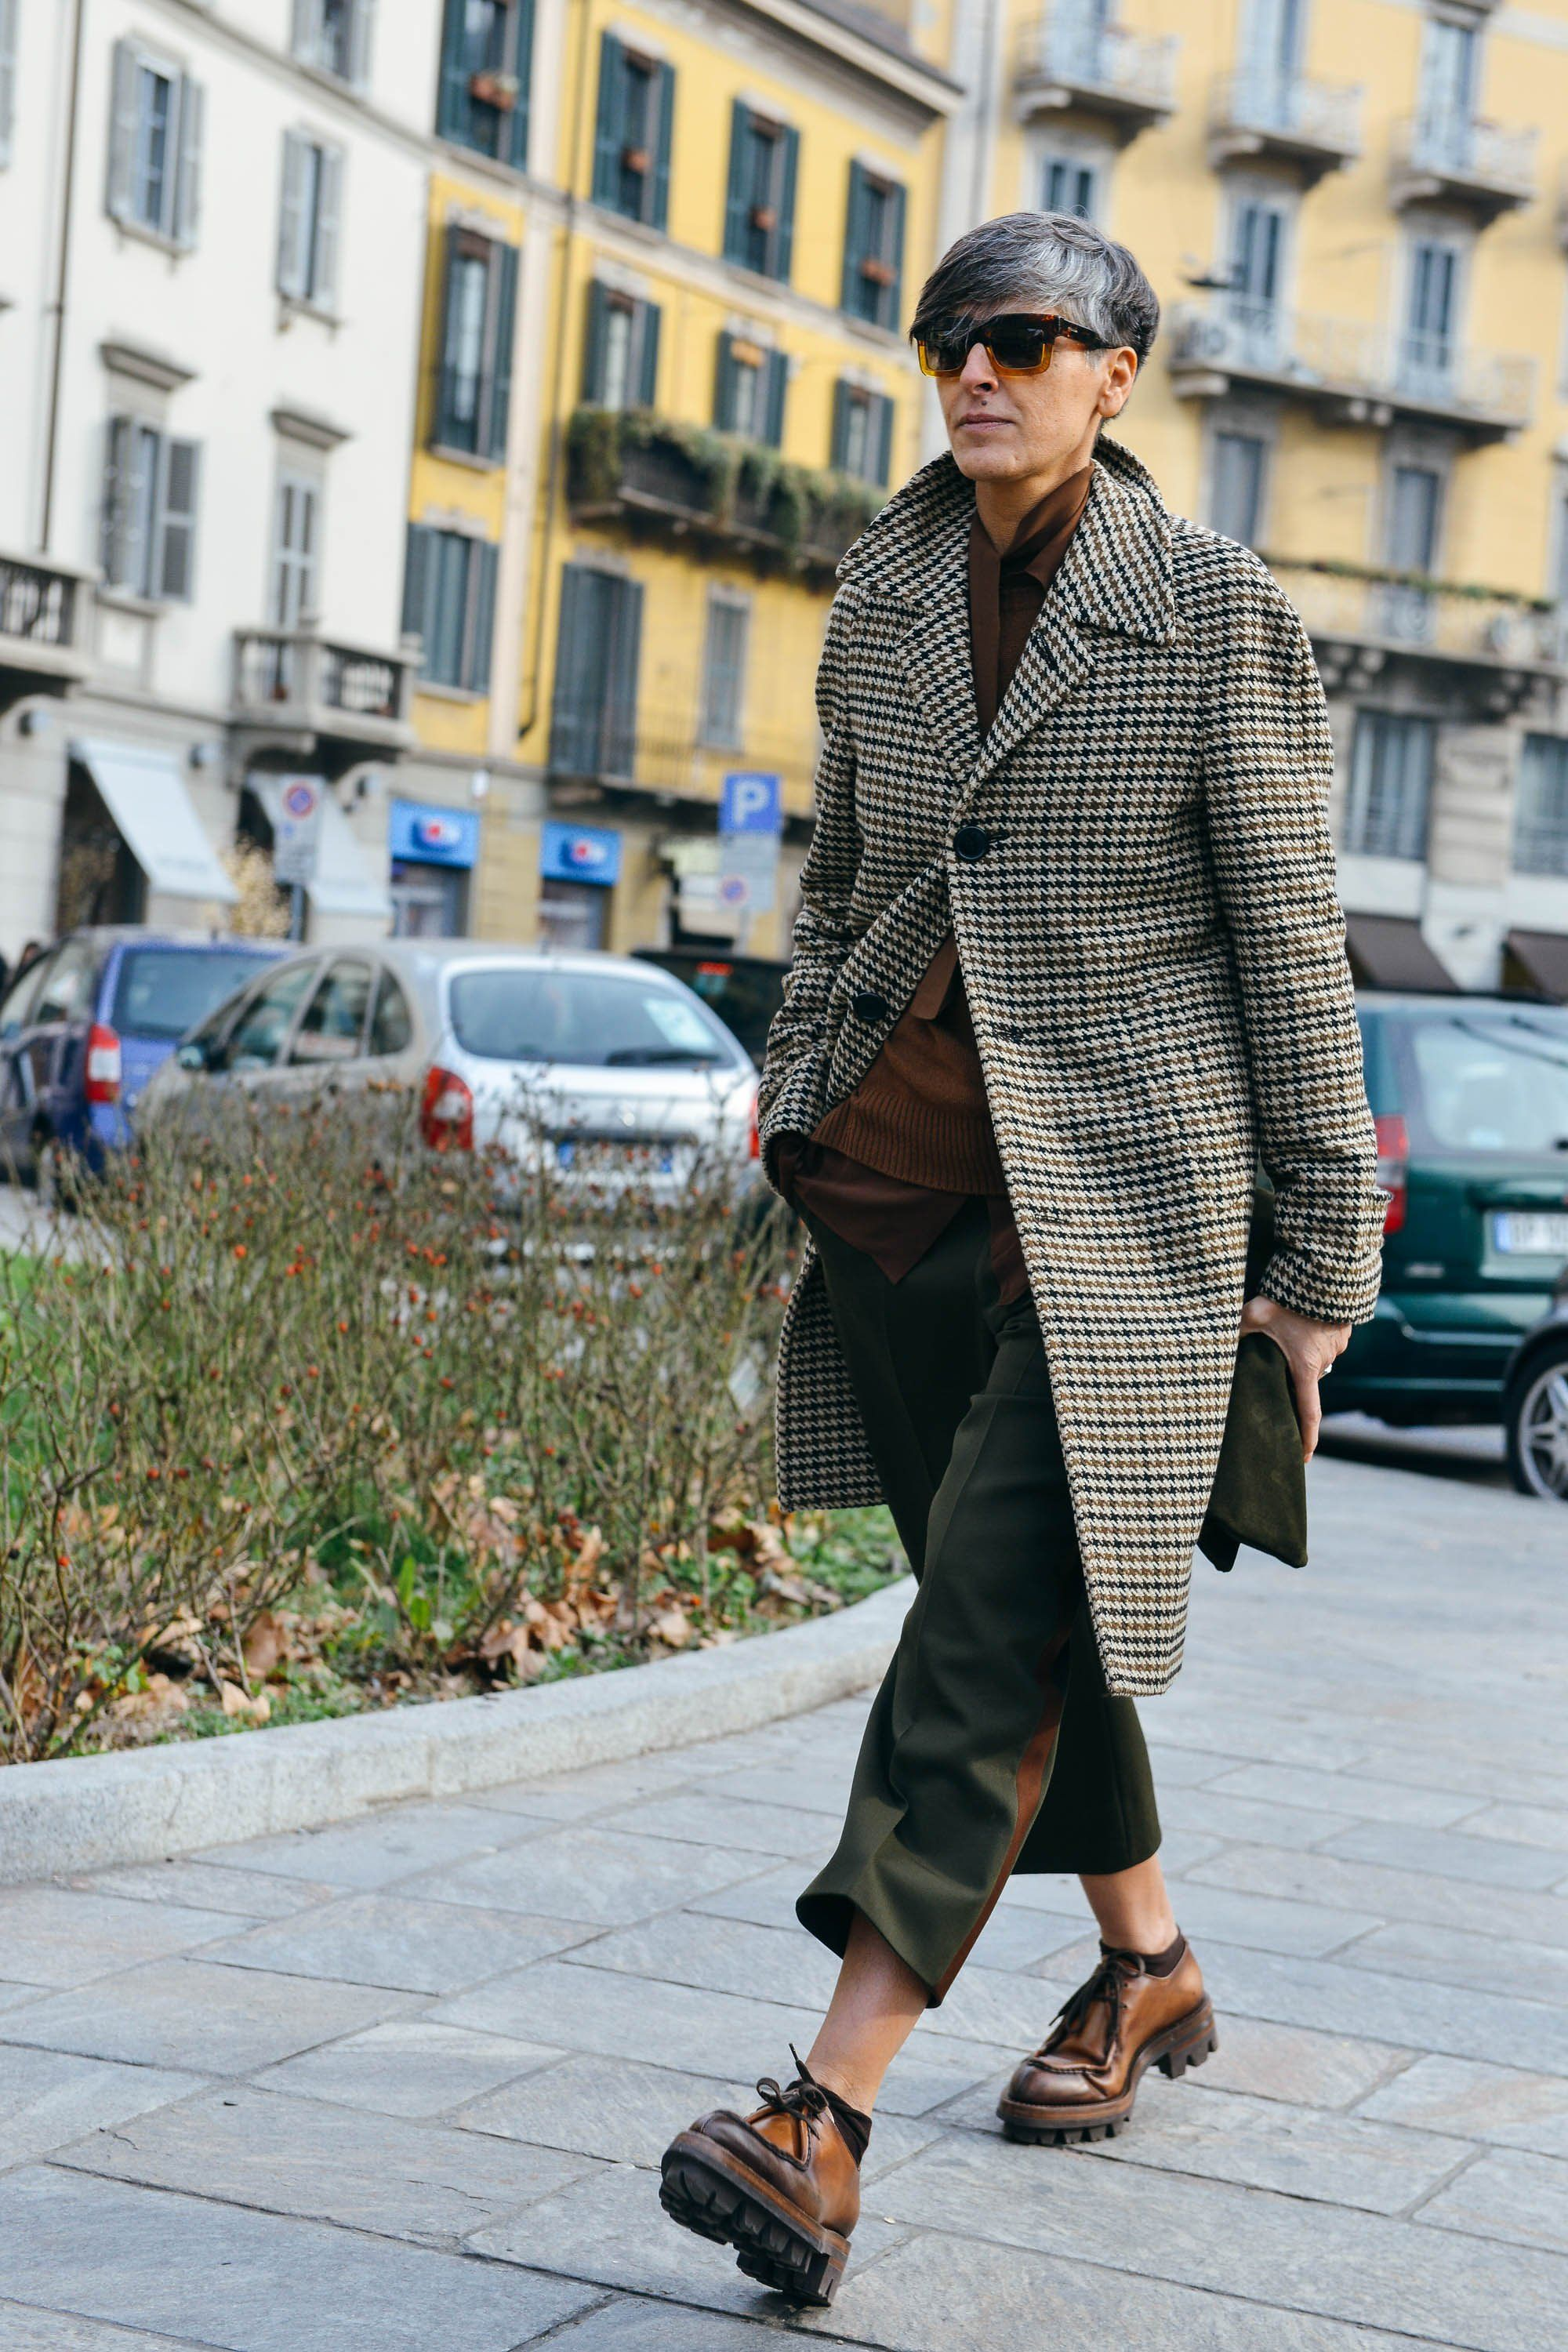 """Ana Gimeno Brugada - """"Yes, Ana Gimeno Brugada is a woman, but if you're looking for the human being putting the freshest, most modern twists on traditional menswear staples, you can bet Brugada is it. She mixes patterns better than any of the boys and can make a cropped tuxedo pant look unexpectedly fresh."""" —Steff Yotka"""